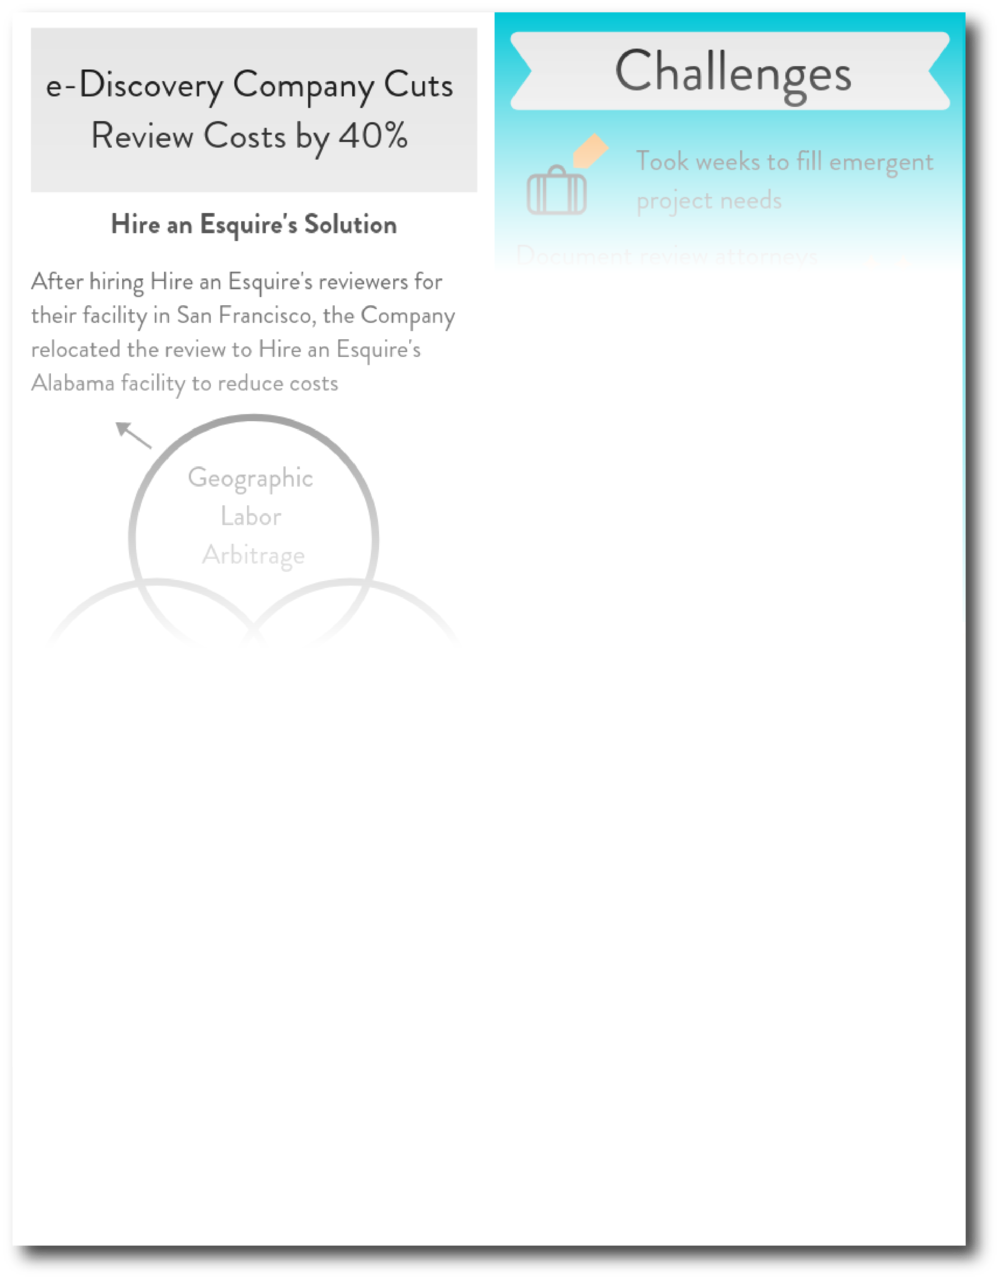 e-Discovery Company Cuts Review Costs by 40% - • Discover how algorithm-assisted matches expedite staffing time• Synopsis of how our three pronged approach to eDiscovery can expedite staffing time and minimize financial burden• Review how we helped provide an on site review for a fraction of the costs